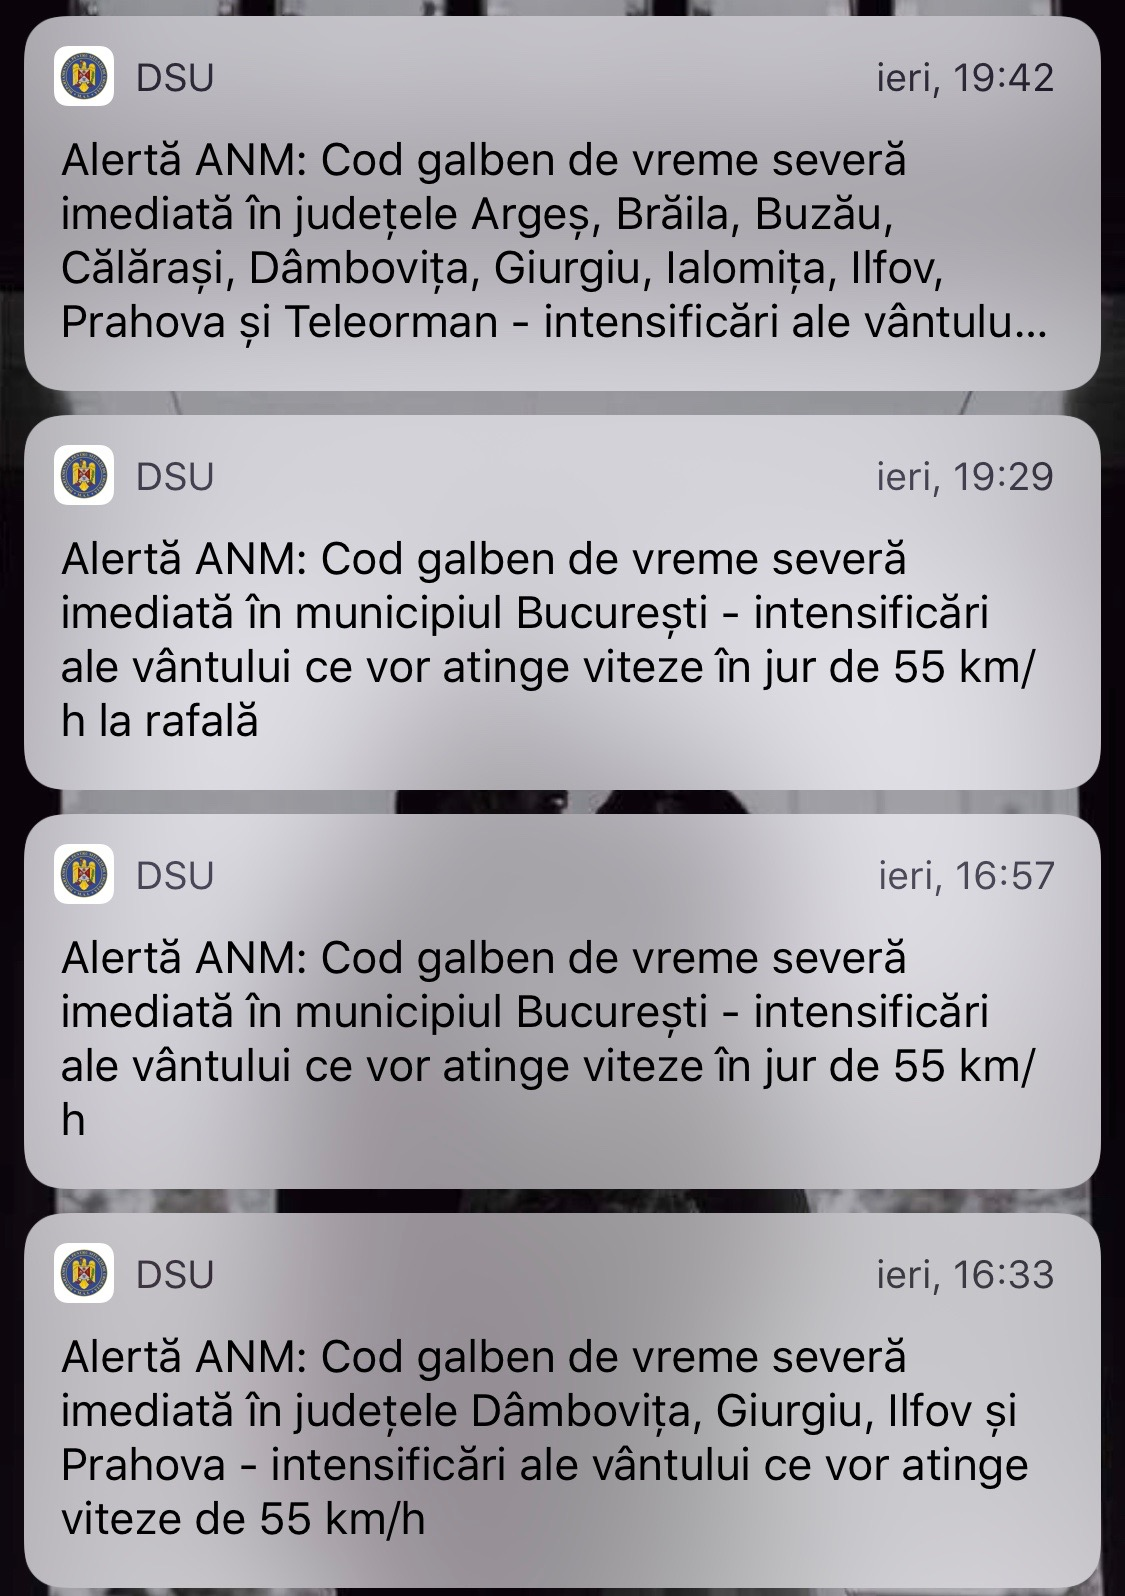 RO-ALERT aplicatia dsu iphone android 1